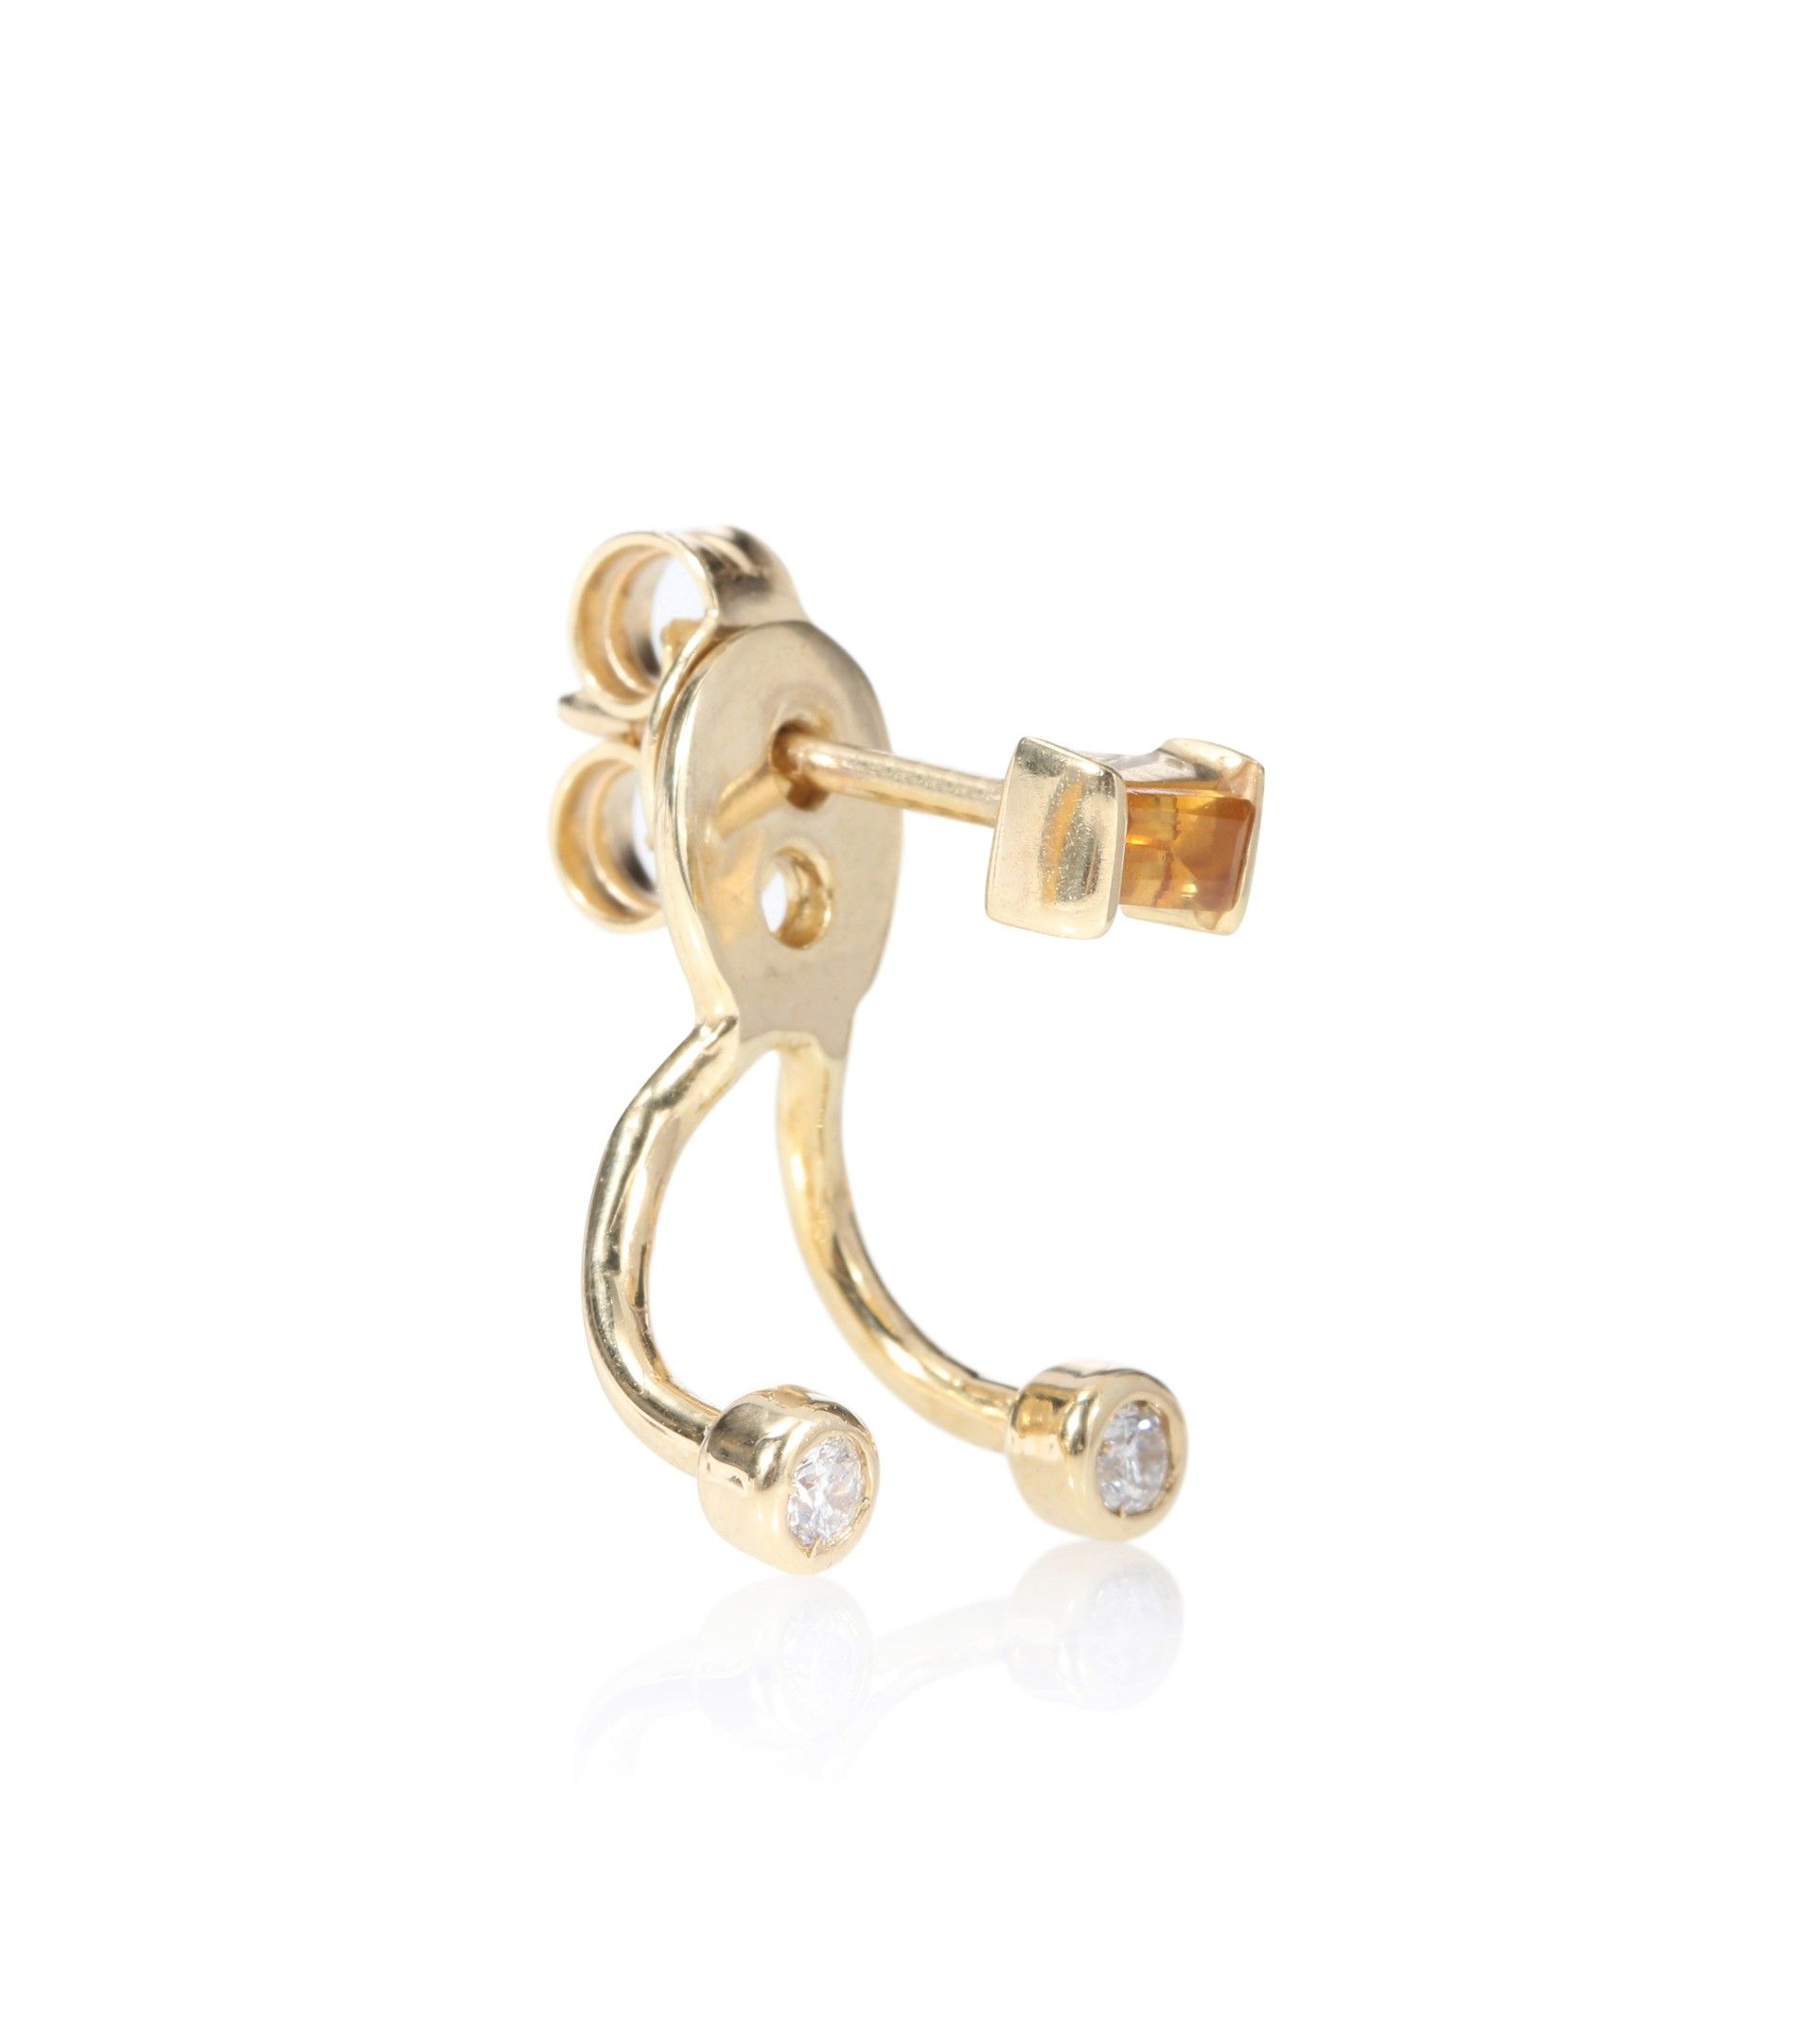 Trio Baguette 9kt gold, citrine and white diamonds earring Aliita